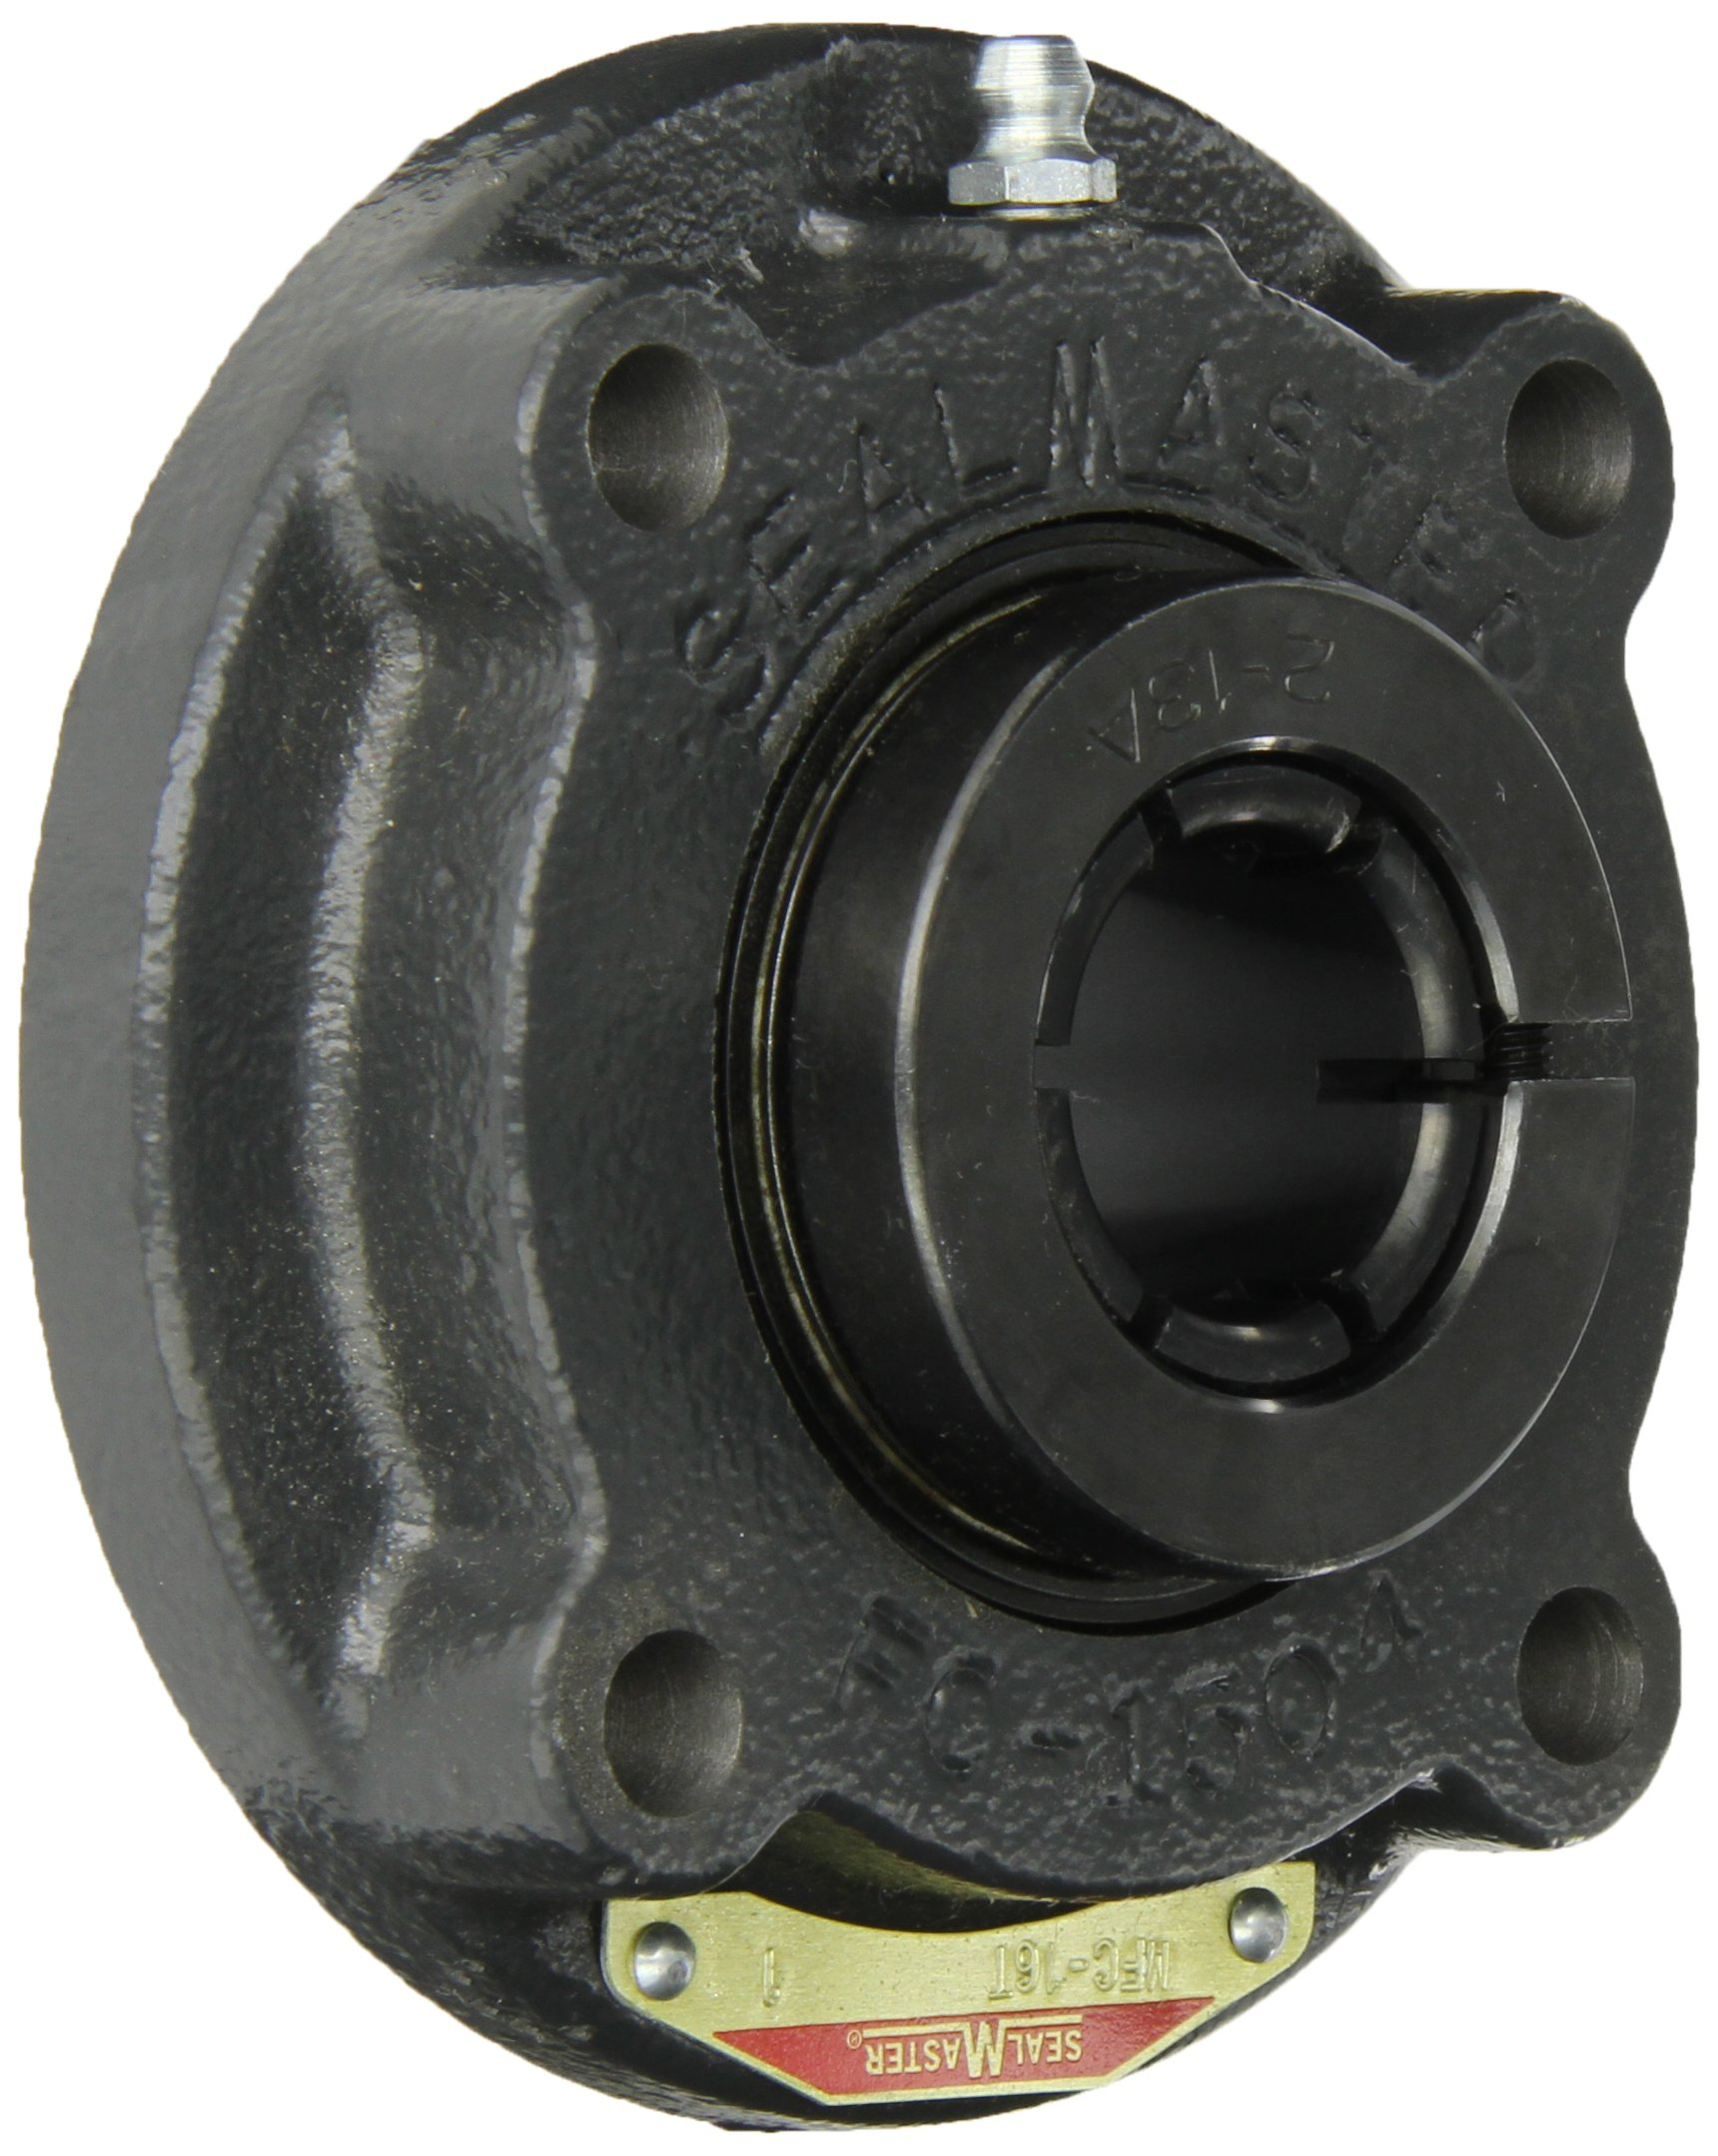 """Sealmaster MFC-16T Medium Duty Piloted Flange Cartridge, 4 Bolt, Regreasable, Felt Seals, Skwezloc Collar, Cast Iron Housing, 1"""" Bore, 4-3/8"""" Overall Length, 2-9/16"""" Bolt Hole Spacing Width, 3/8"""" Flange Height, ±2 Degrees Misalignment Angle"""